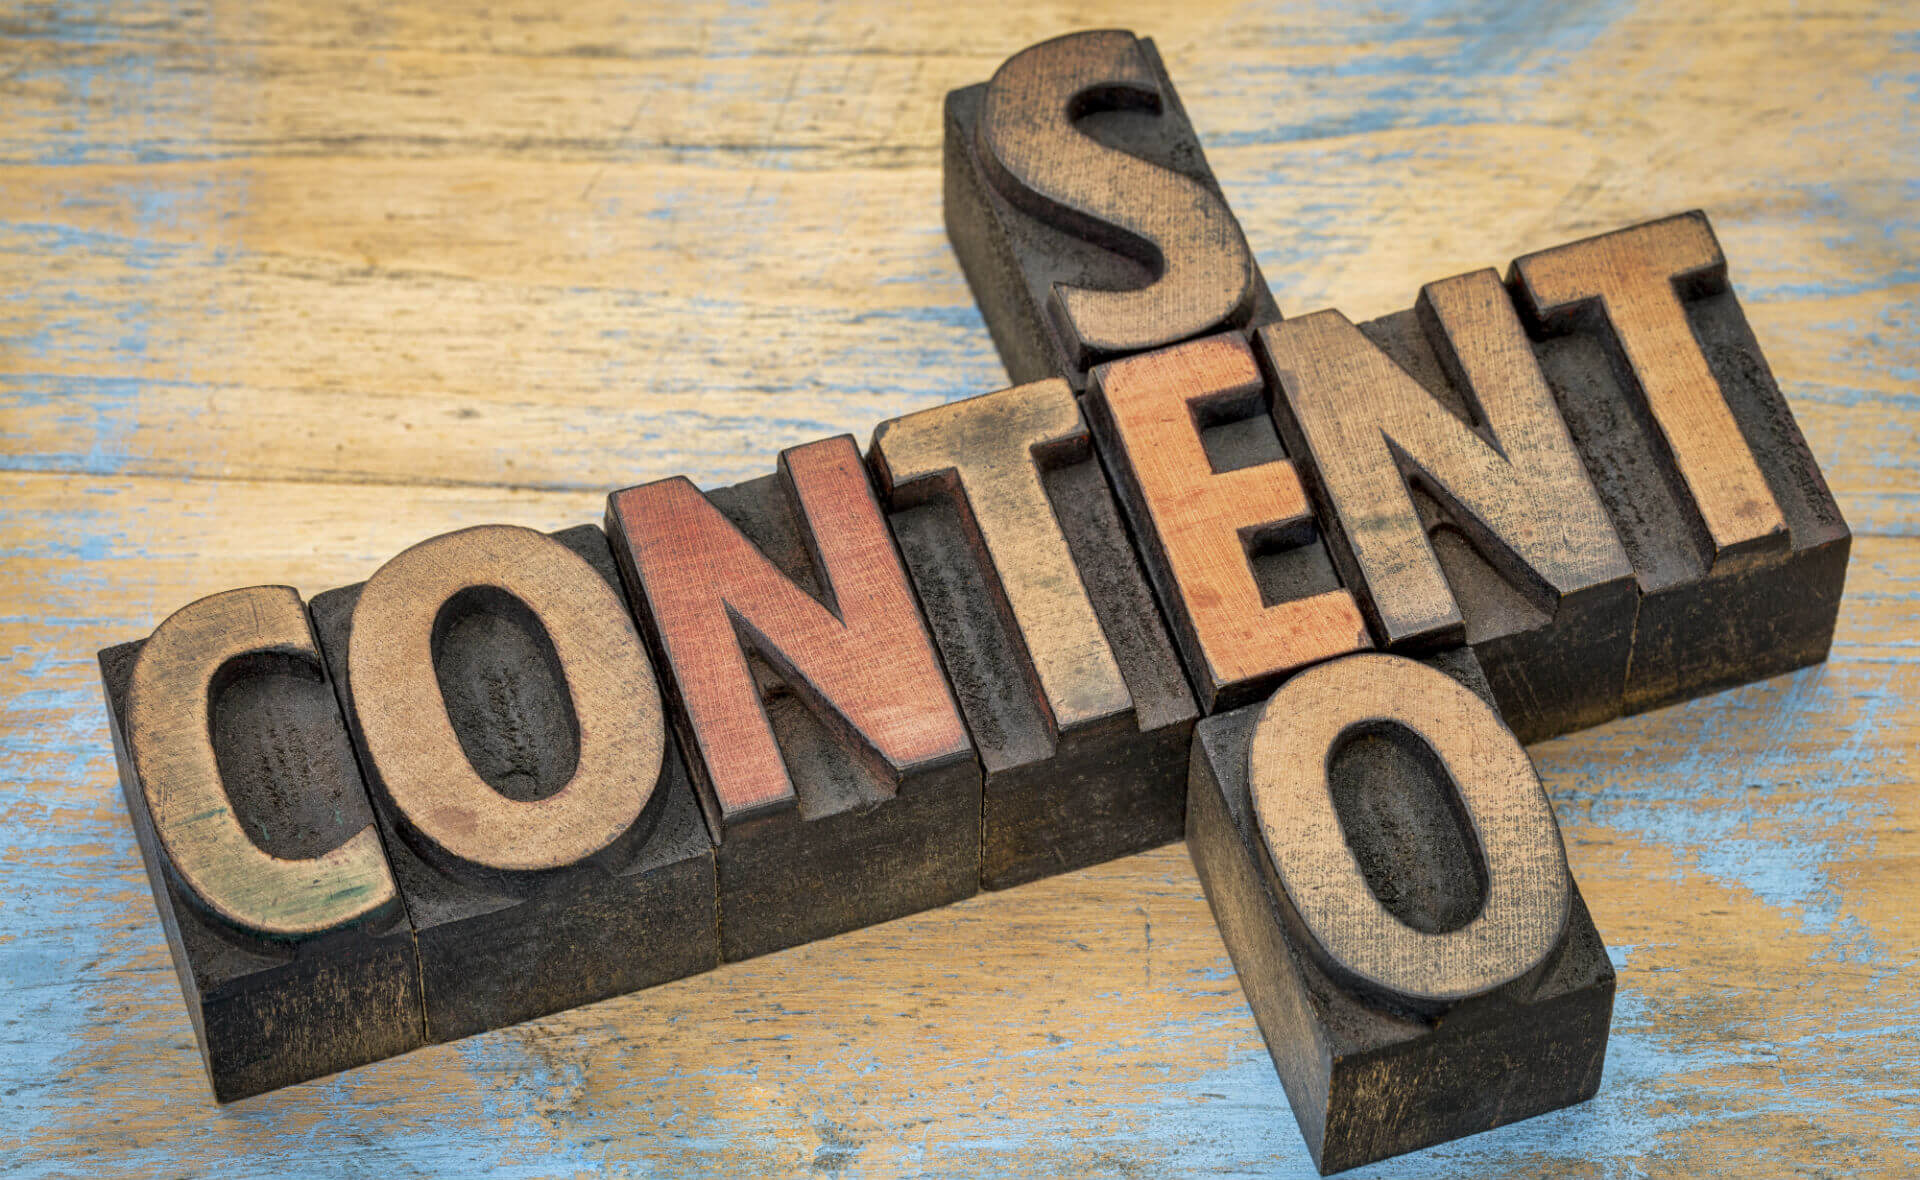 How to Optimize Content for SEO